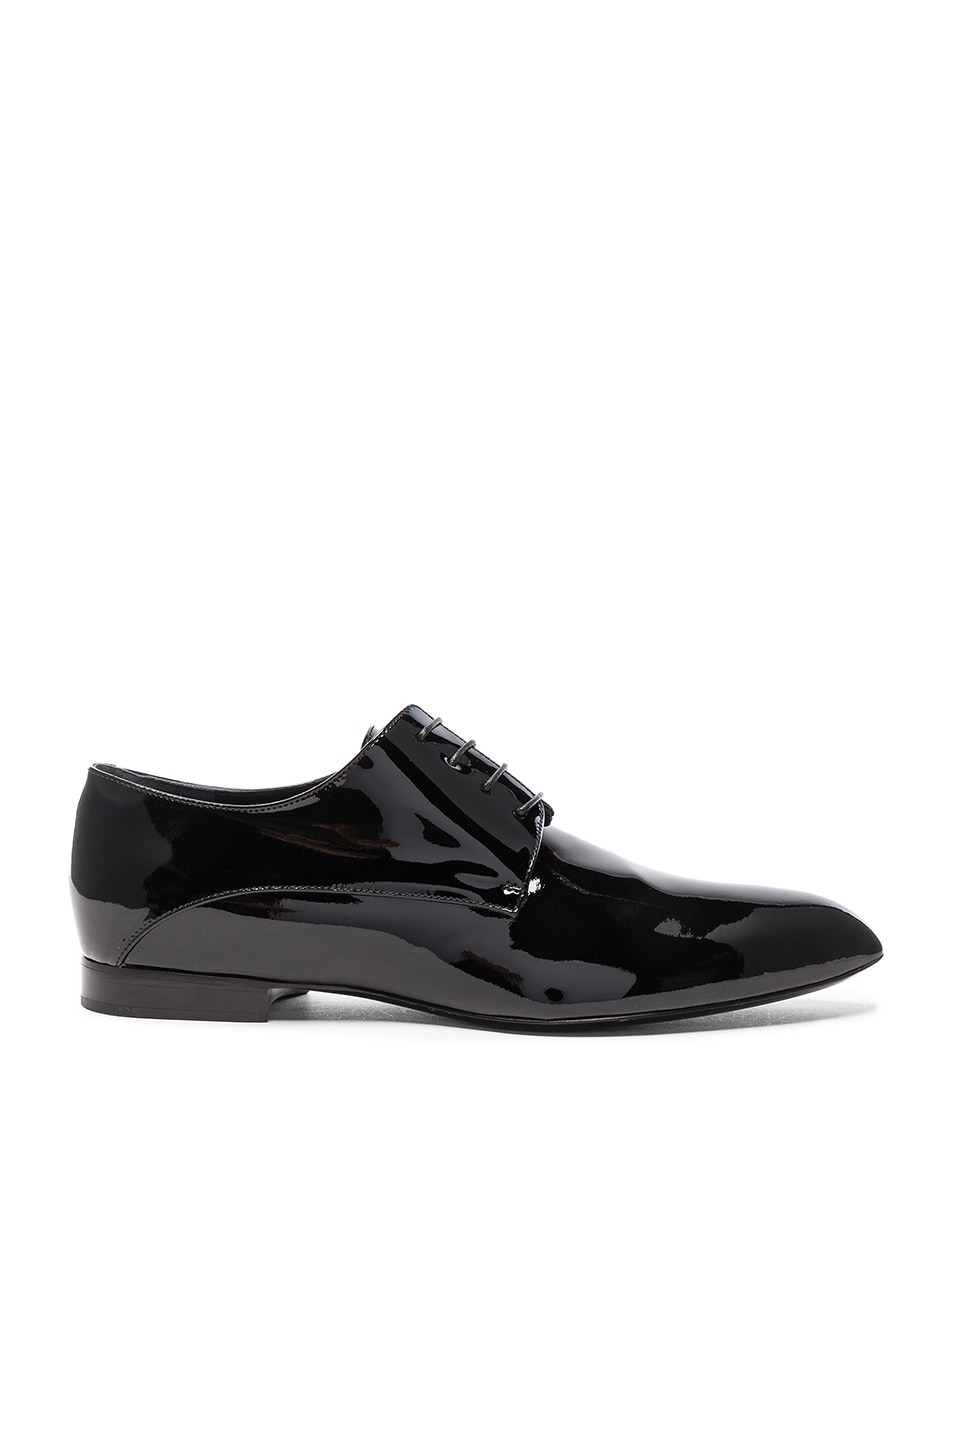 Image 1 of Jil Sander Patent Leather Oxfords in Nero